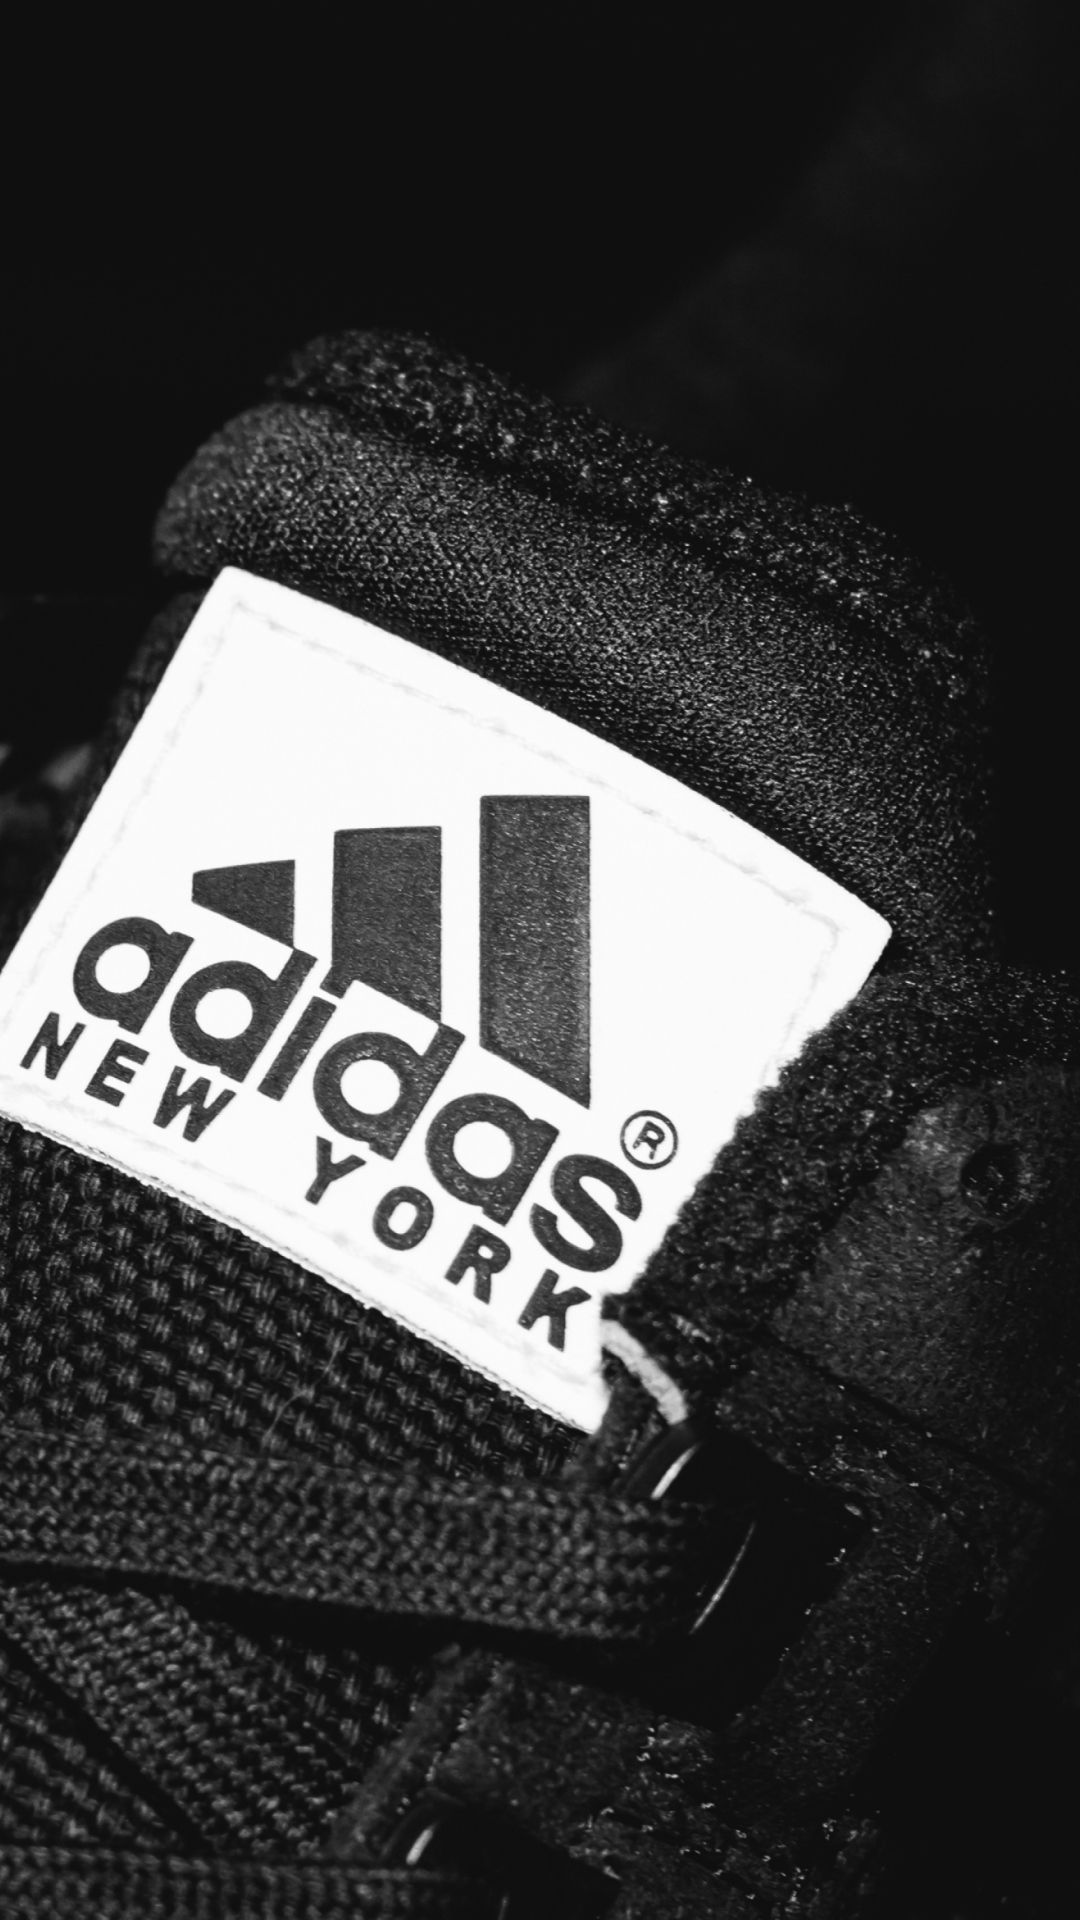 1080x1920 Adidas running shoes iphone 6 hd wallpaper